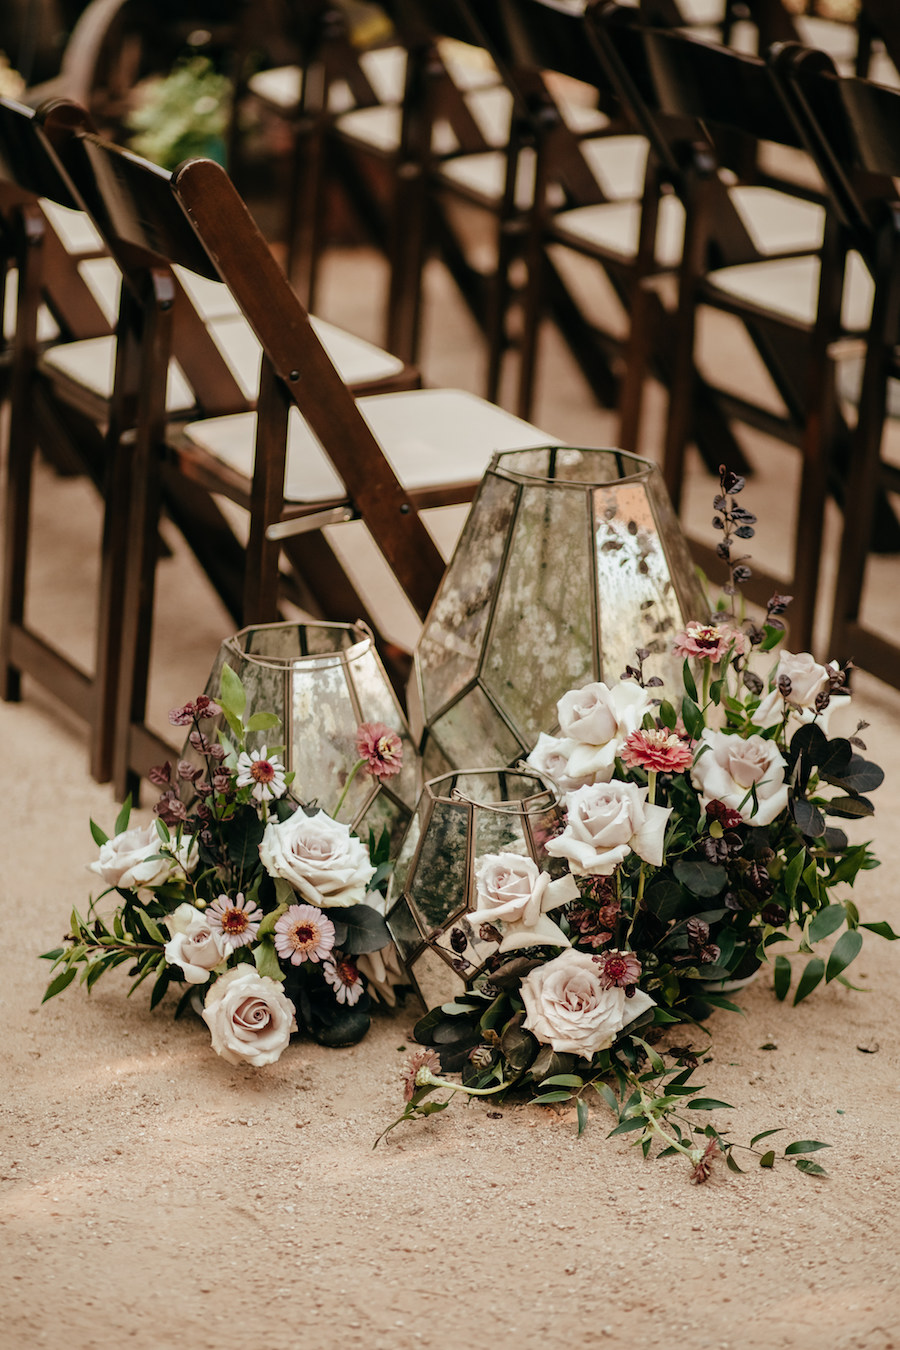 Jennifer and Jared's Chic Copper-Toned Wedding at Chateau St. Jean5.jpg